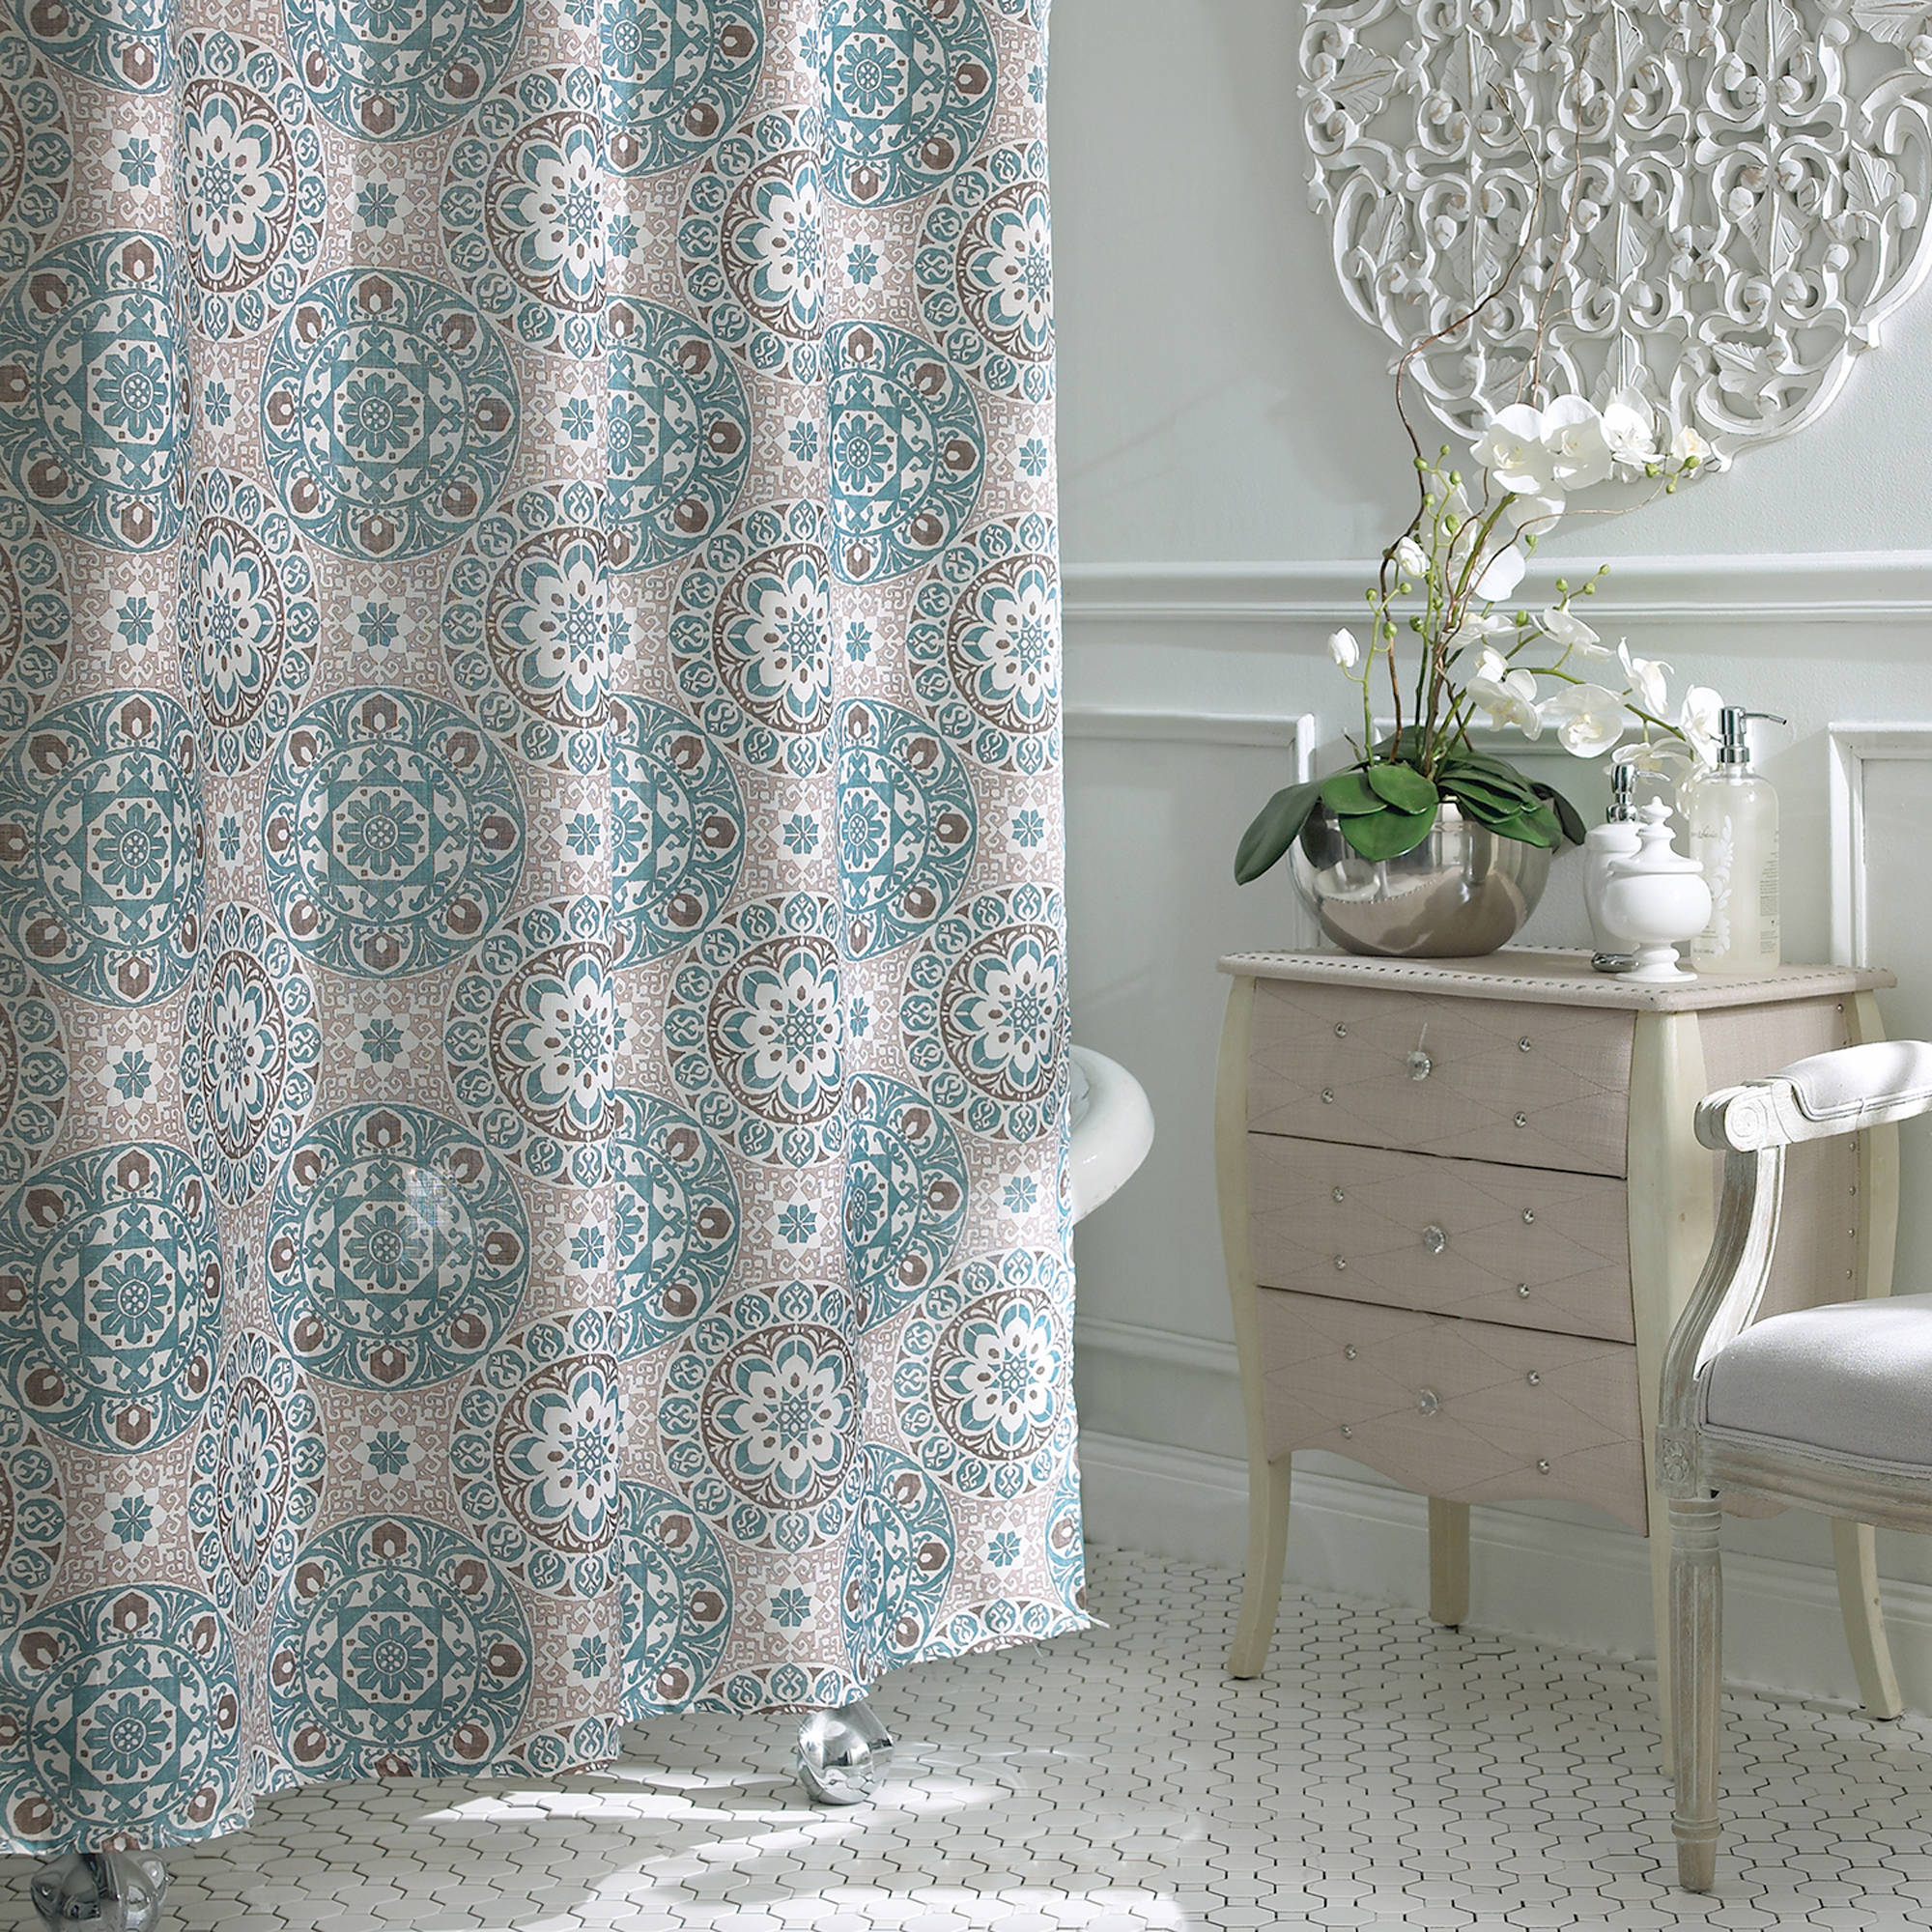 Floral Shower Curtains | Floral Shower Curtain | Blue and Gold Shower Curtain